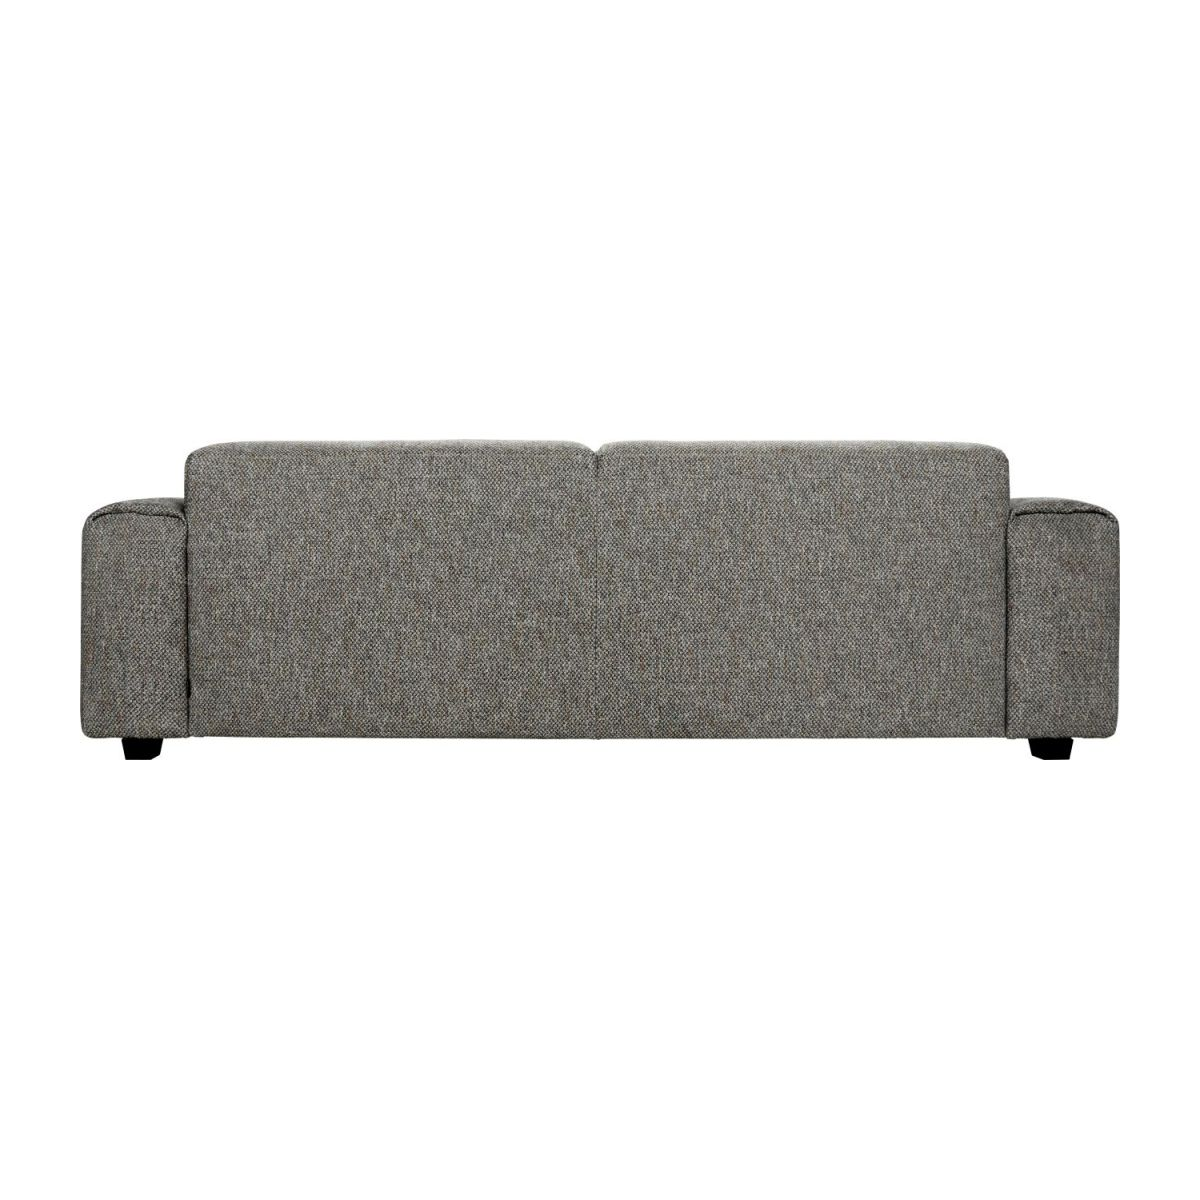 4-Sitzer Sofa aus Stoff Bellagio night black n°6